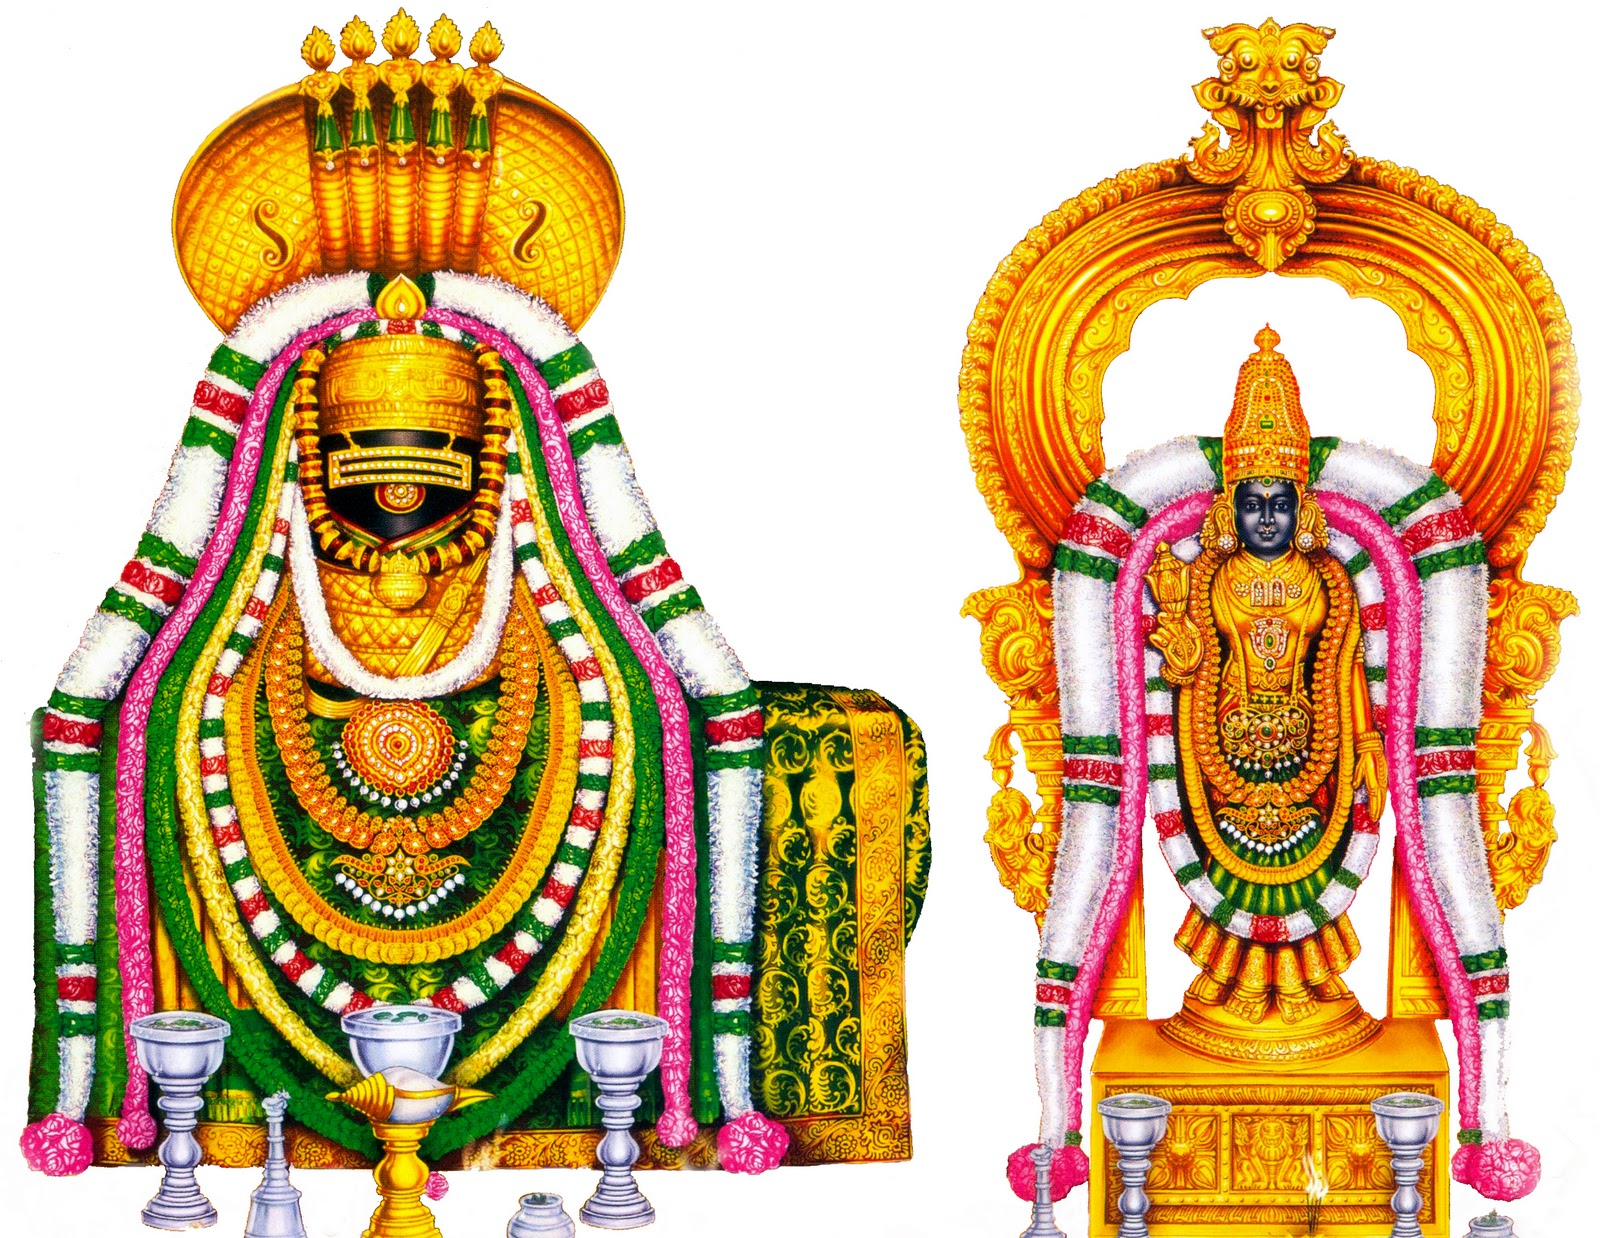 Shiva Lingam Hd Wallpapers Ssn Tamil Blogspot Temples Of Five Elements